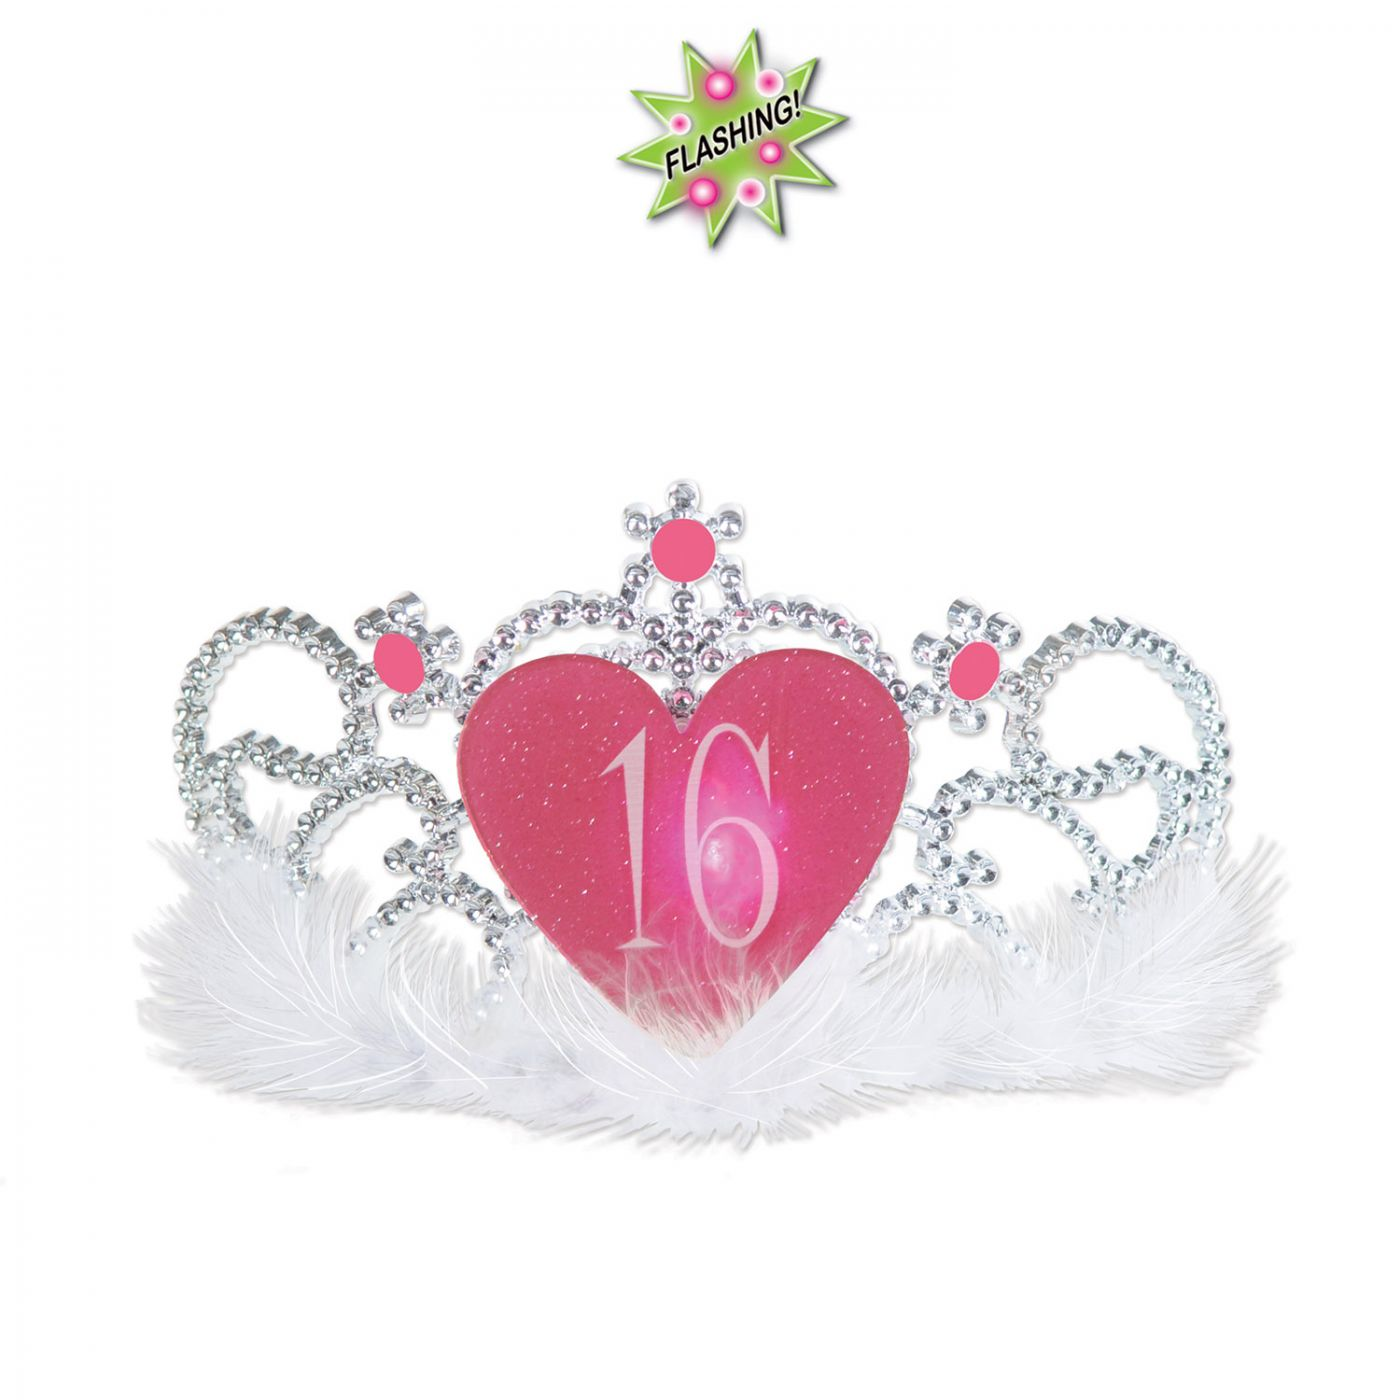 Plastic Light-Up  16  Tiara (6) image